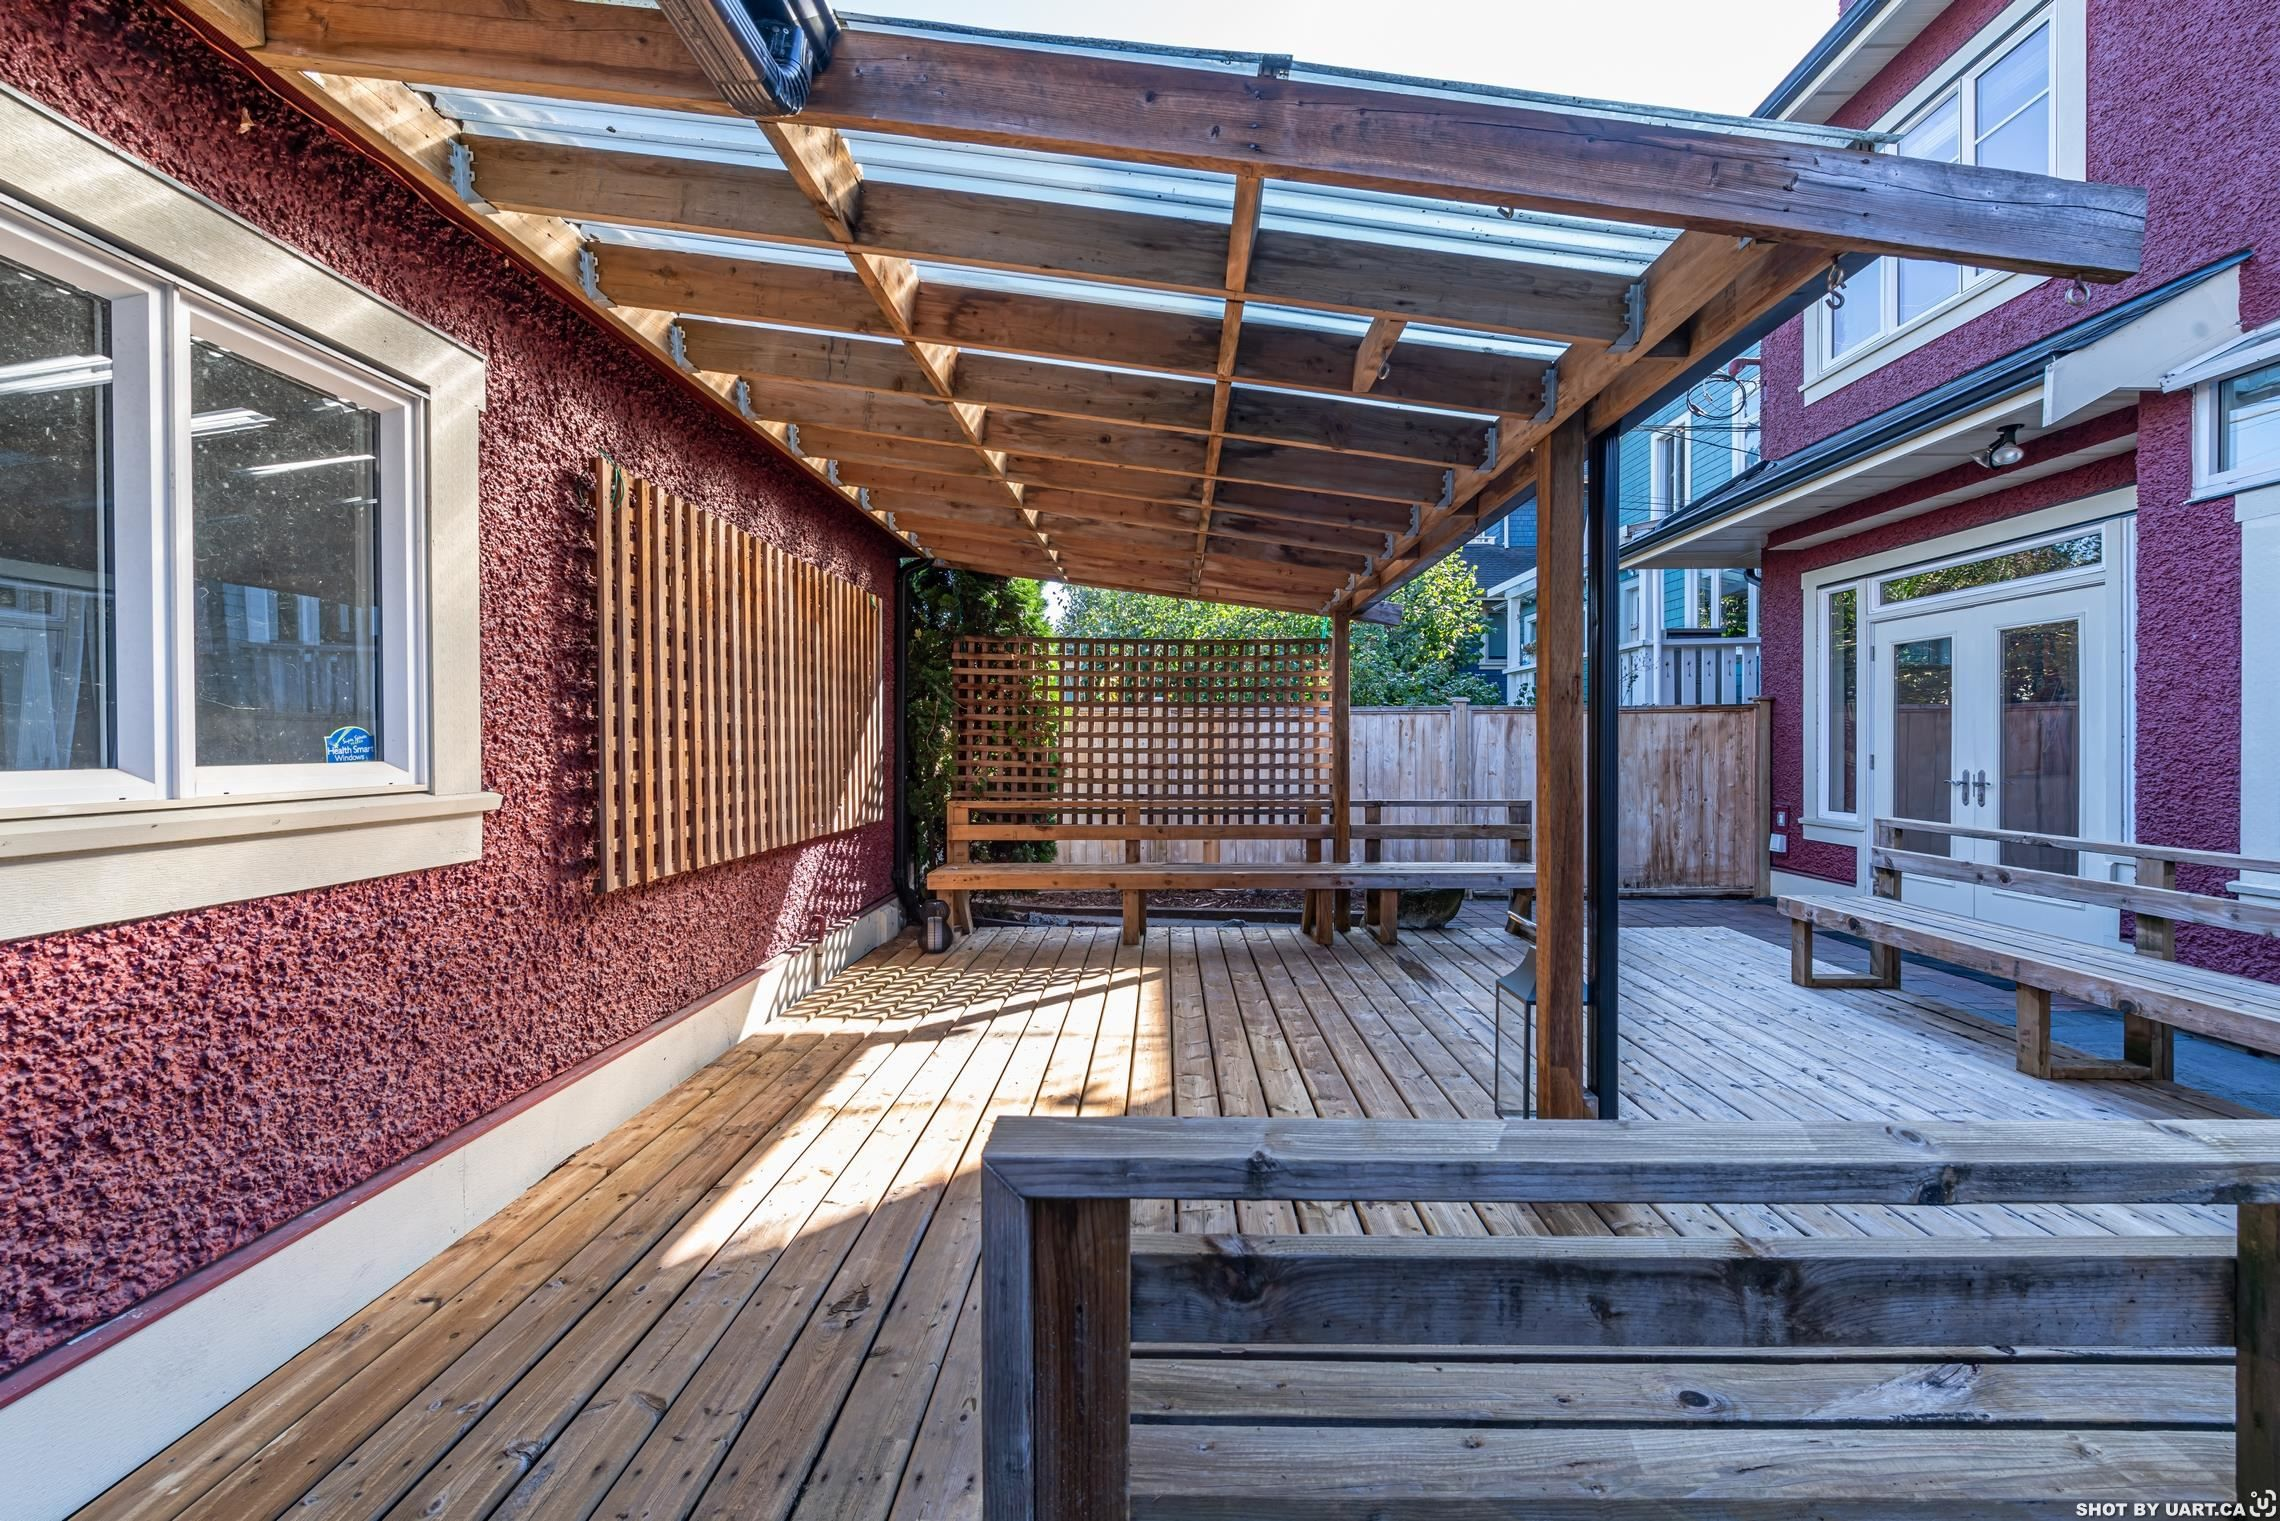 Main Photo: 3487 W 2ND Avenue in Vancouver: Kitsilano 1/2 Duplex for sale (Vancouver West)  : MLS®# R2621064